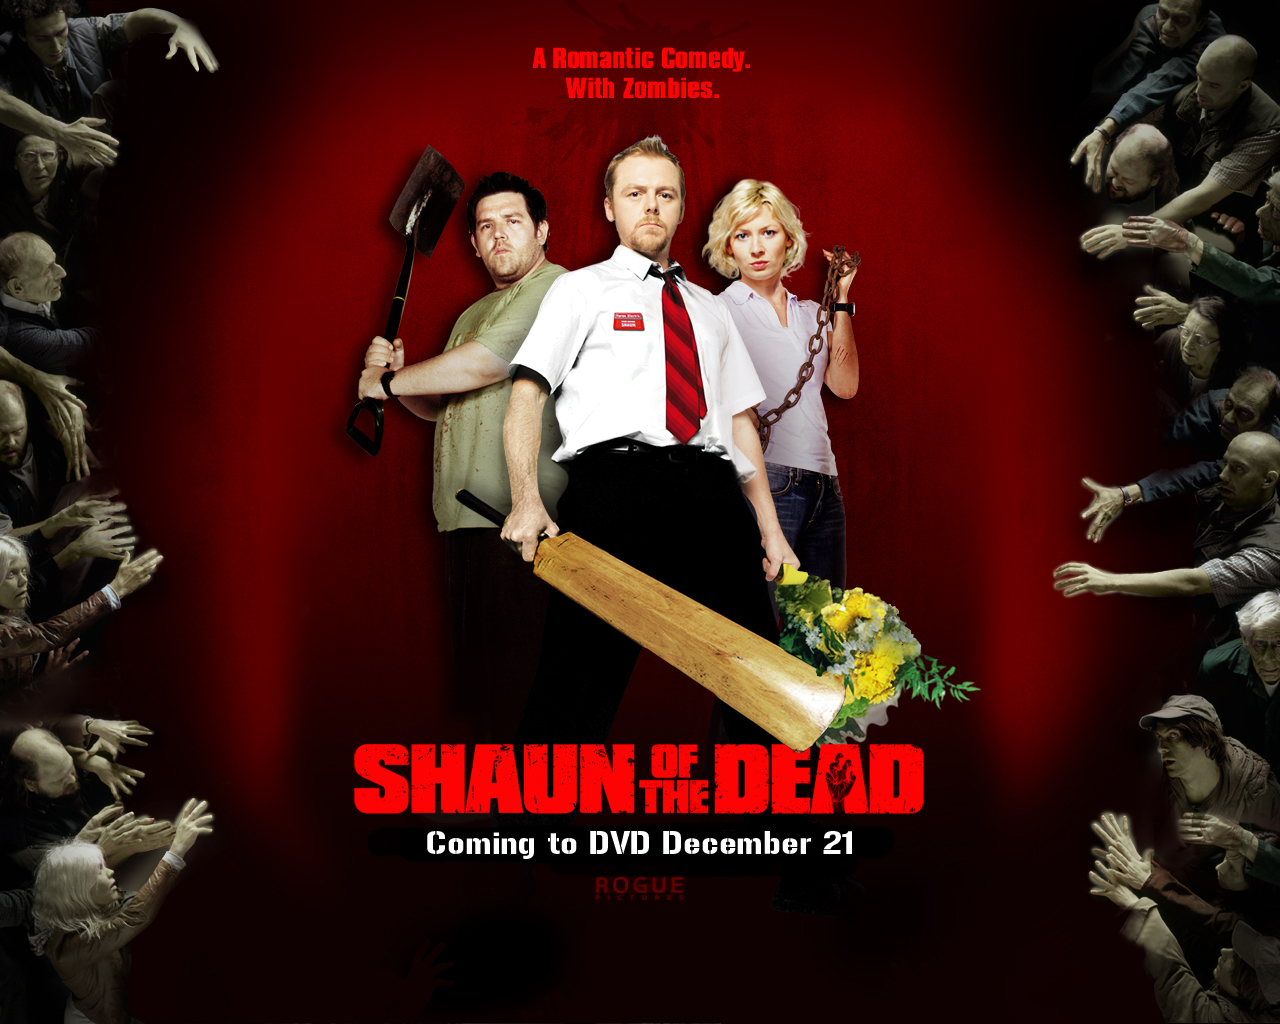 Shaun-of-the-dead-background-shaun-of-the-dead-61288_1280_1024